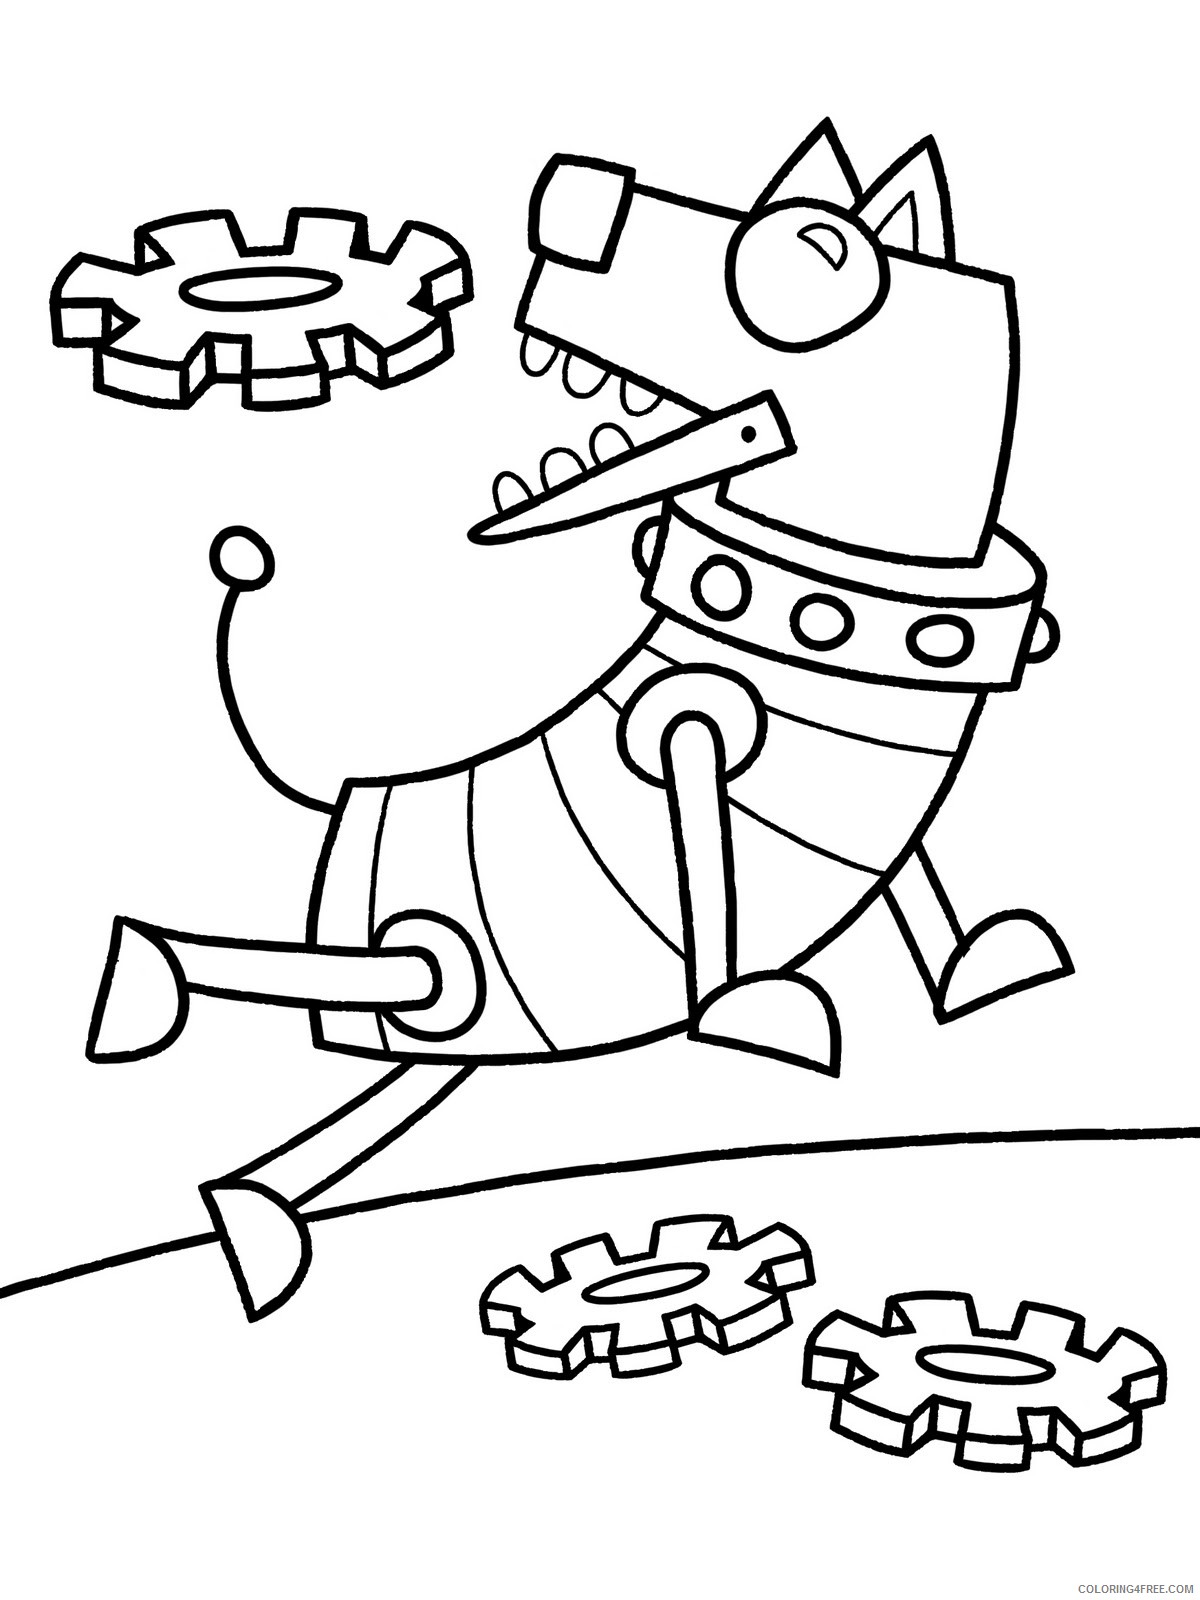 dog robot coloring pages Coloring4free